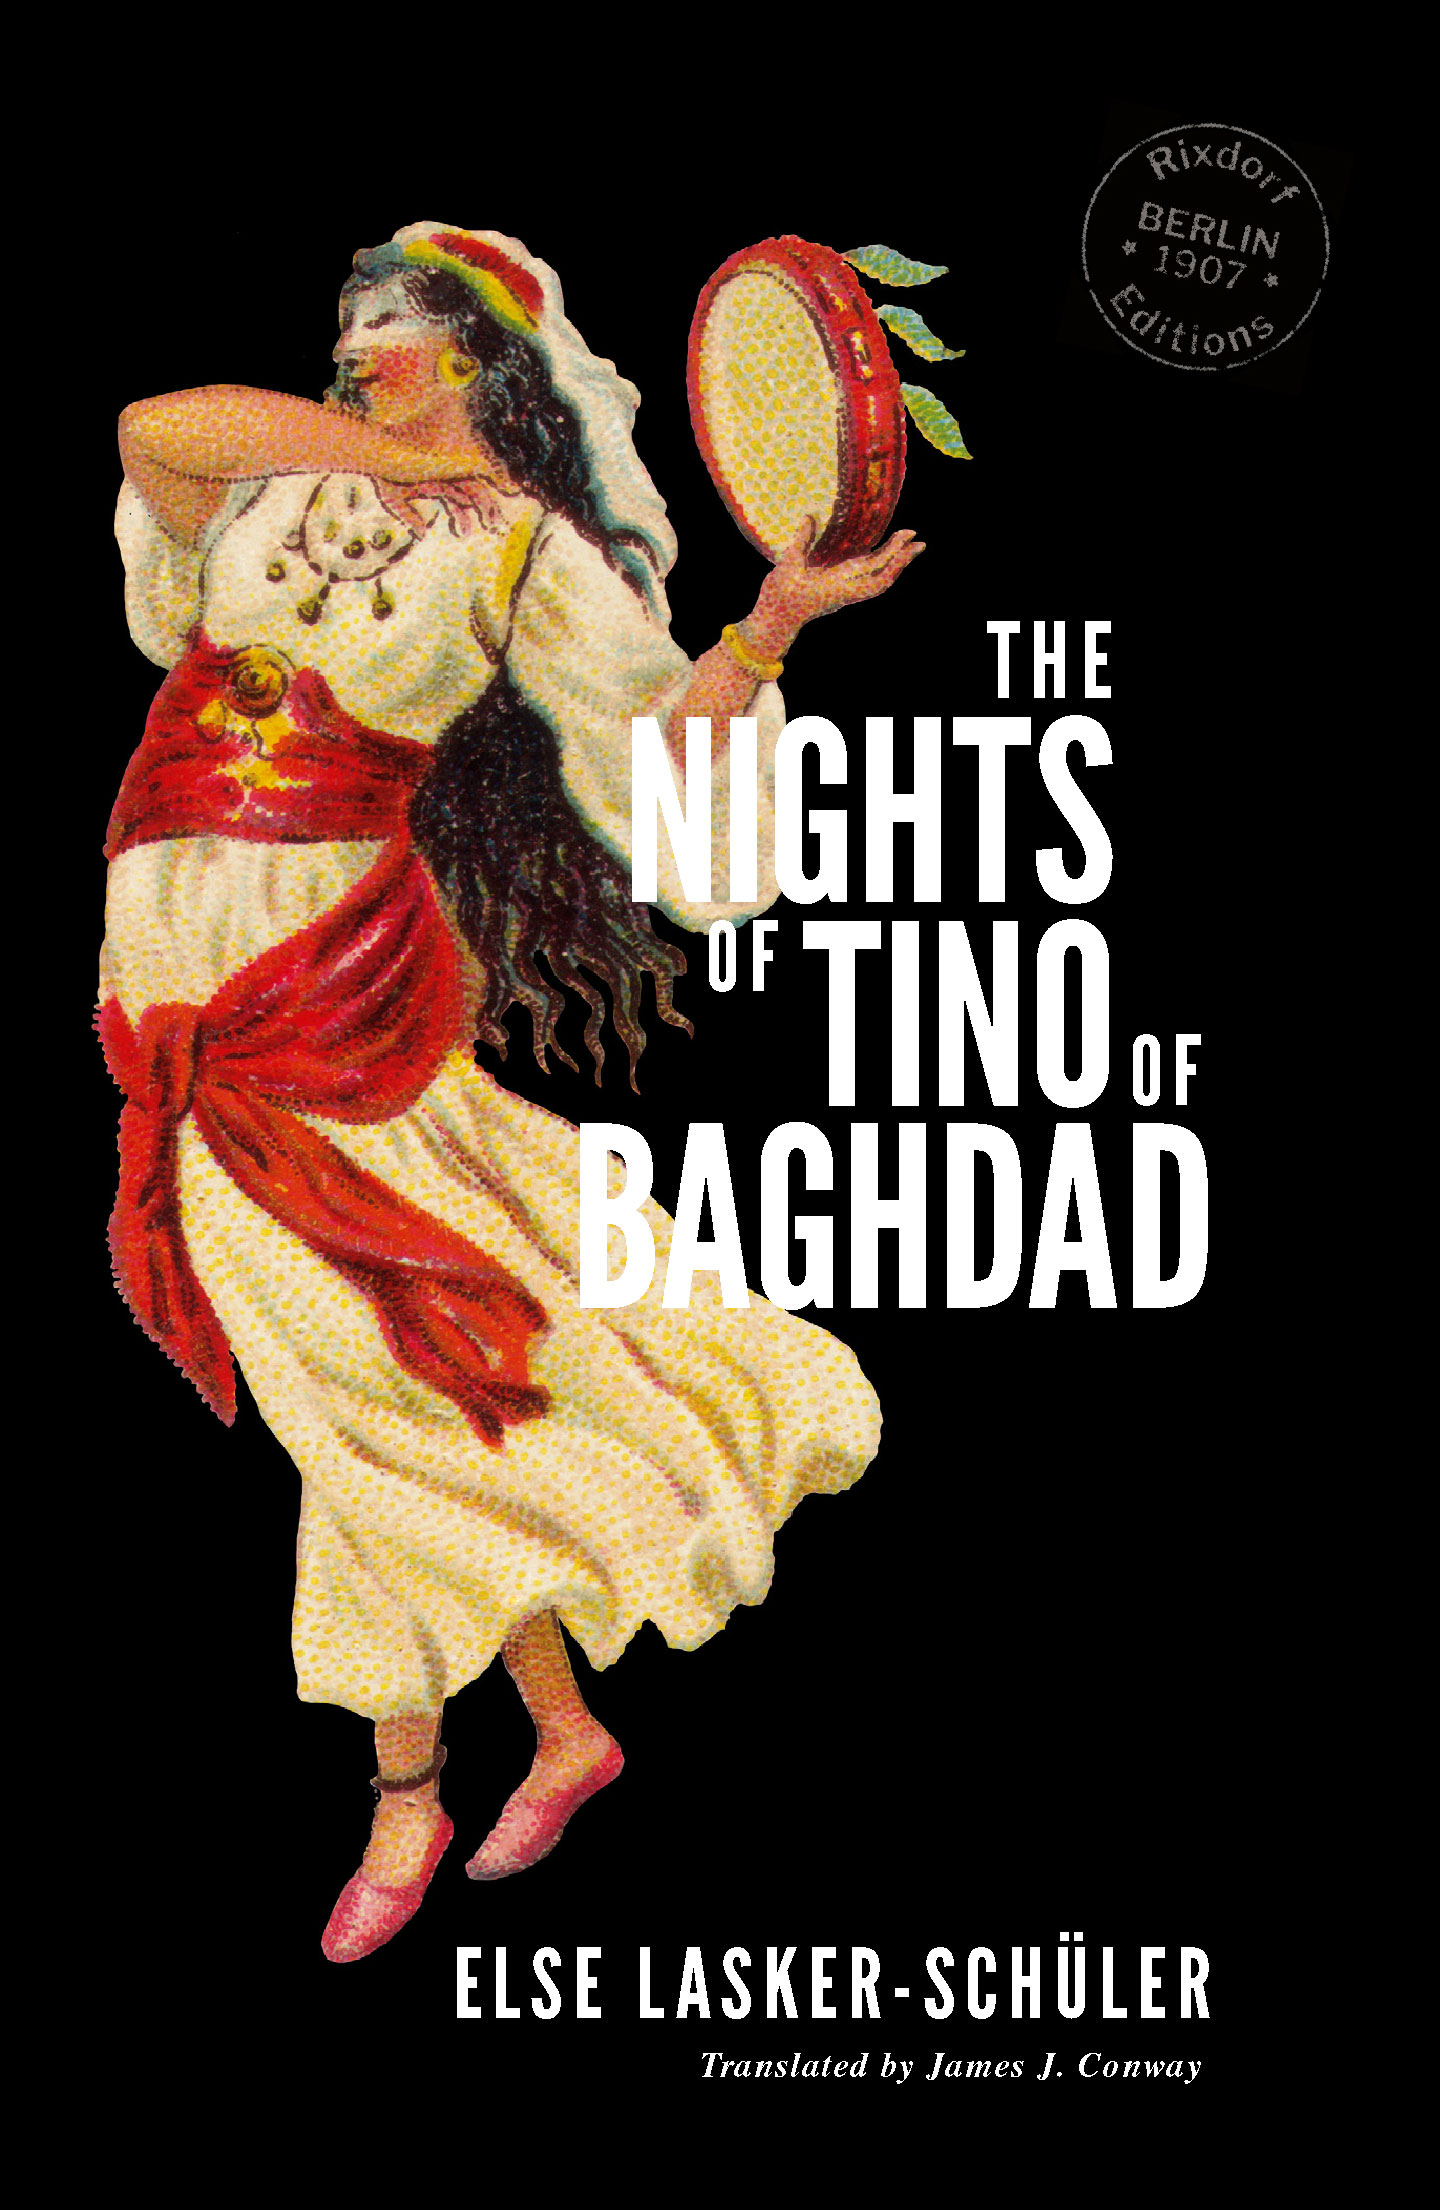 Else Lasker-Schüler   The Nights of Tino of Baghdad  Translated by James J. Conway Design by  Svenja Prigge  29 July 2019 68 pages, PDF only ISBN: 978-3-947325-05-4  Free to mailing list subscribers